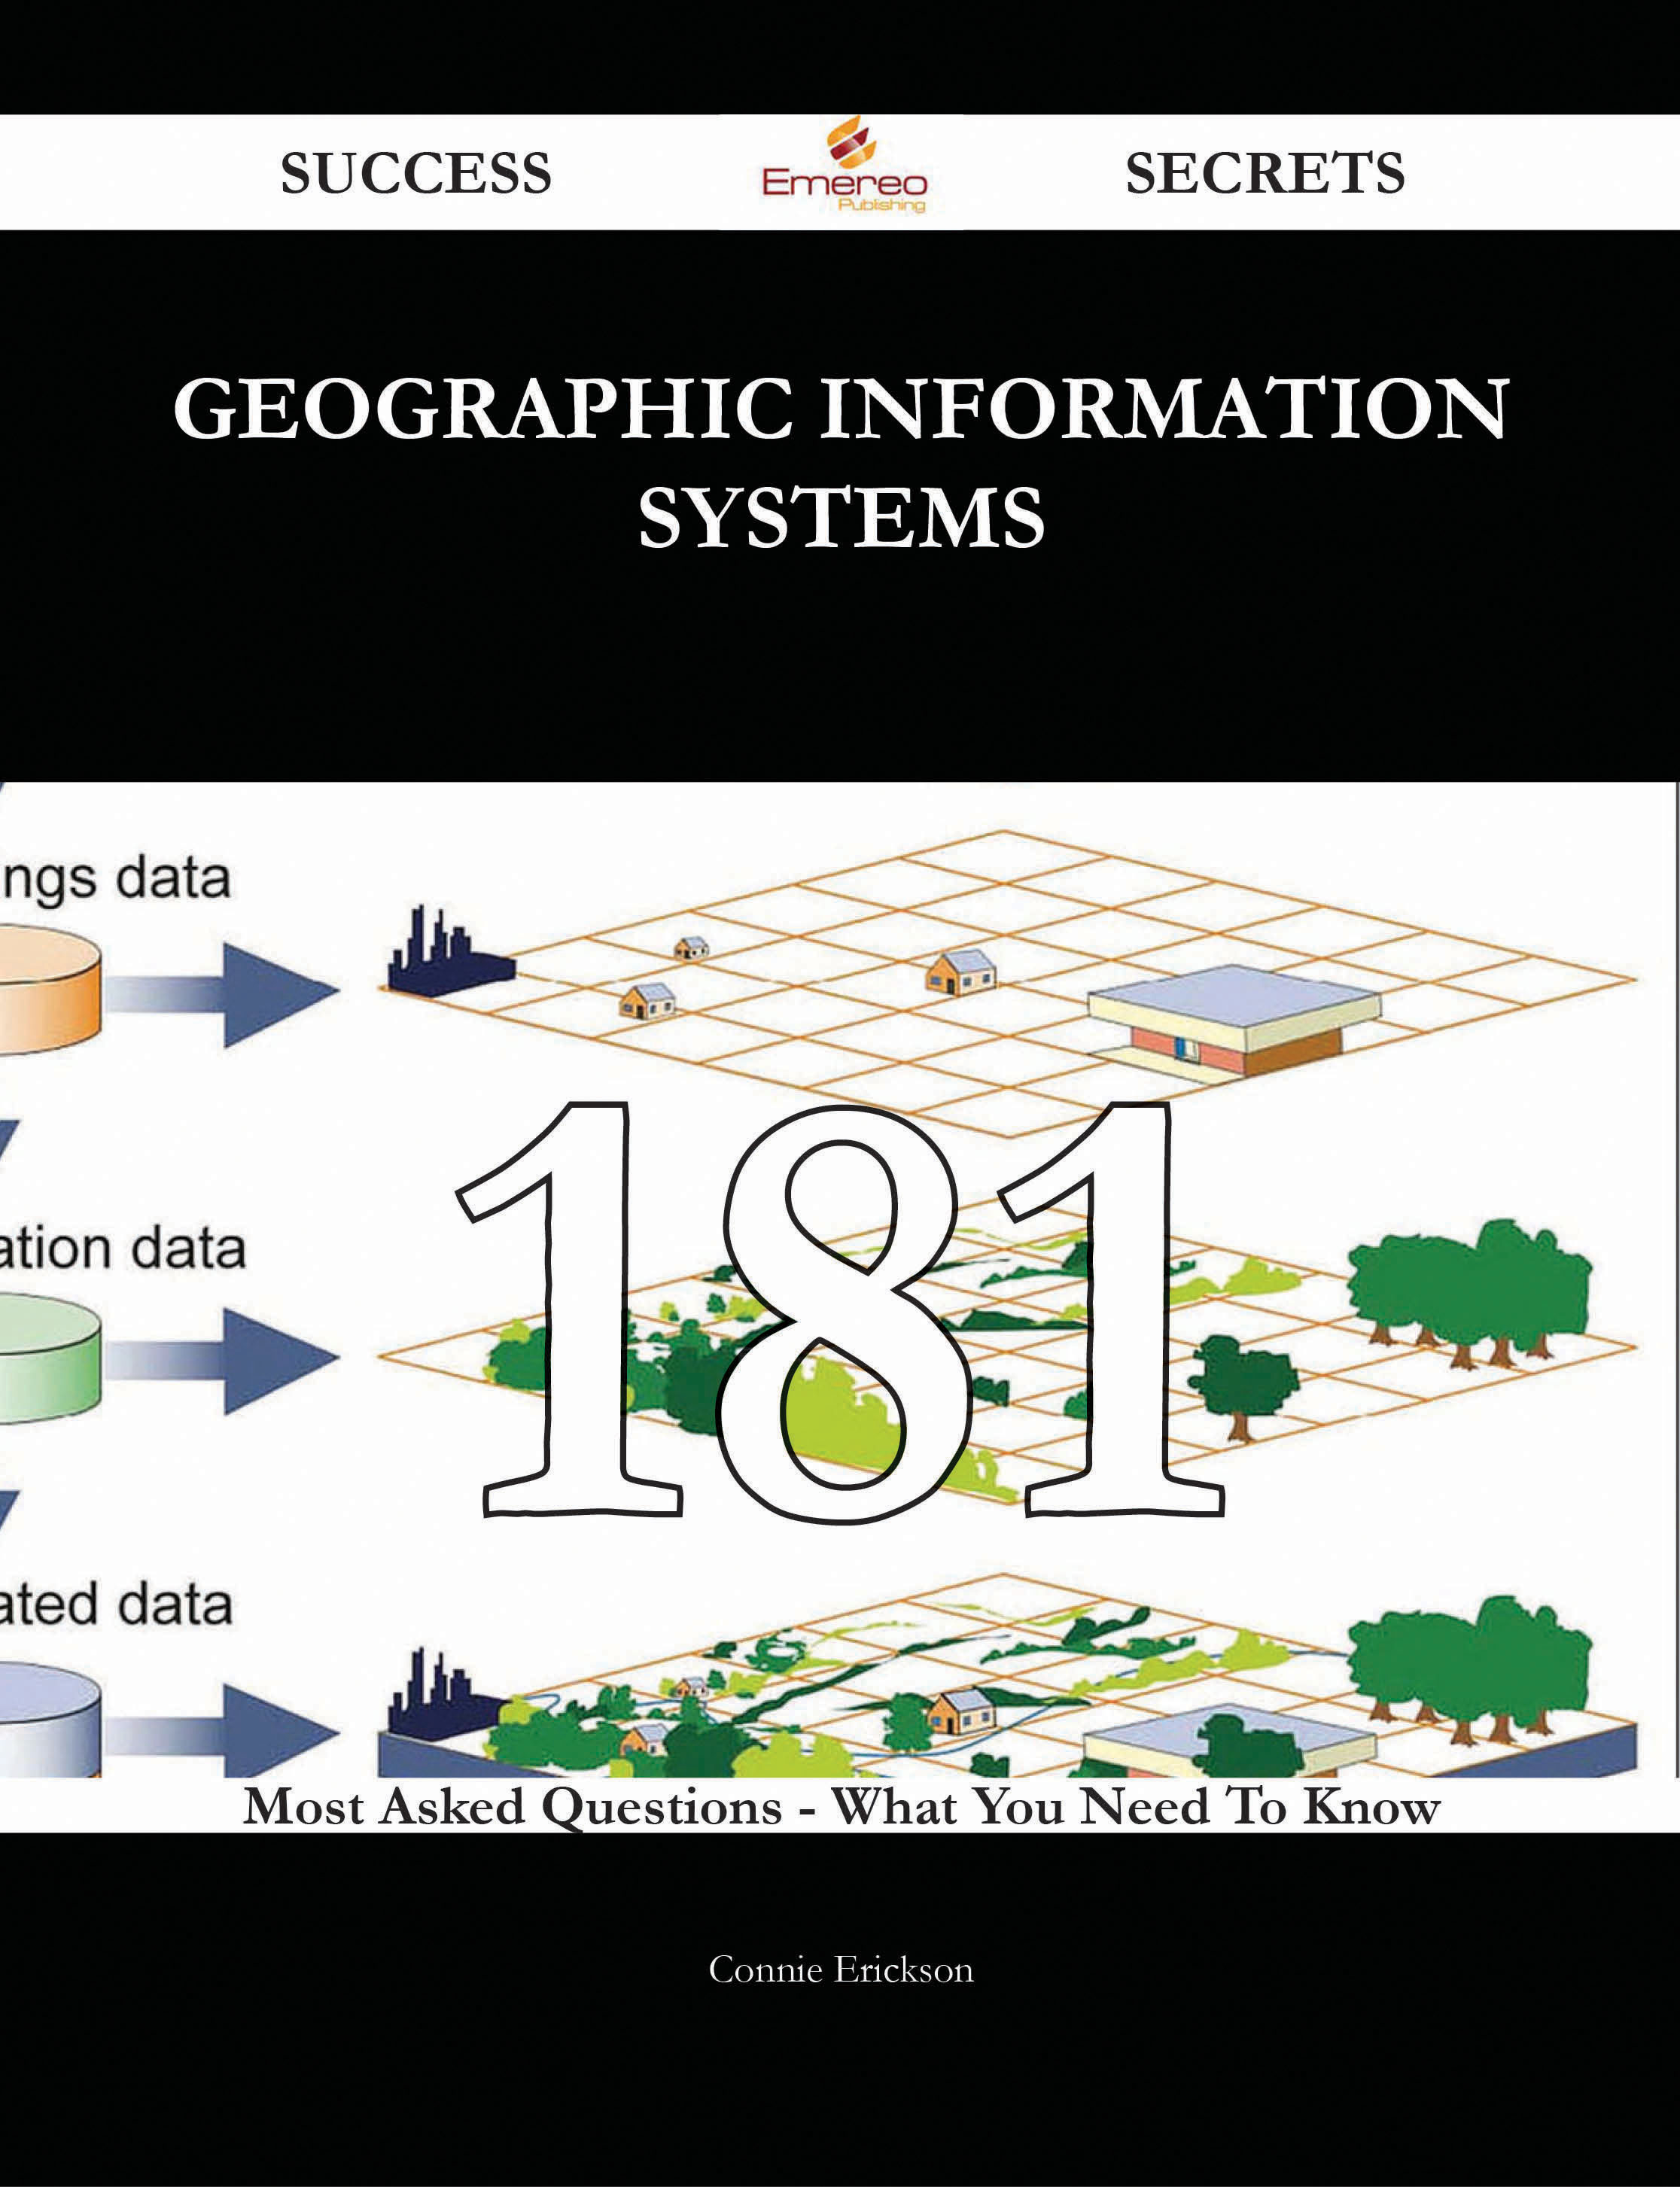 Geographic Information Systems 181 Success Secrets - 181 Most Asked Questions On Geographic Information Systems - What You Need To Know